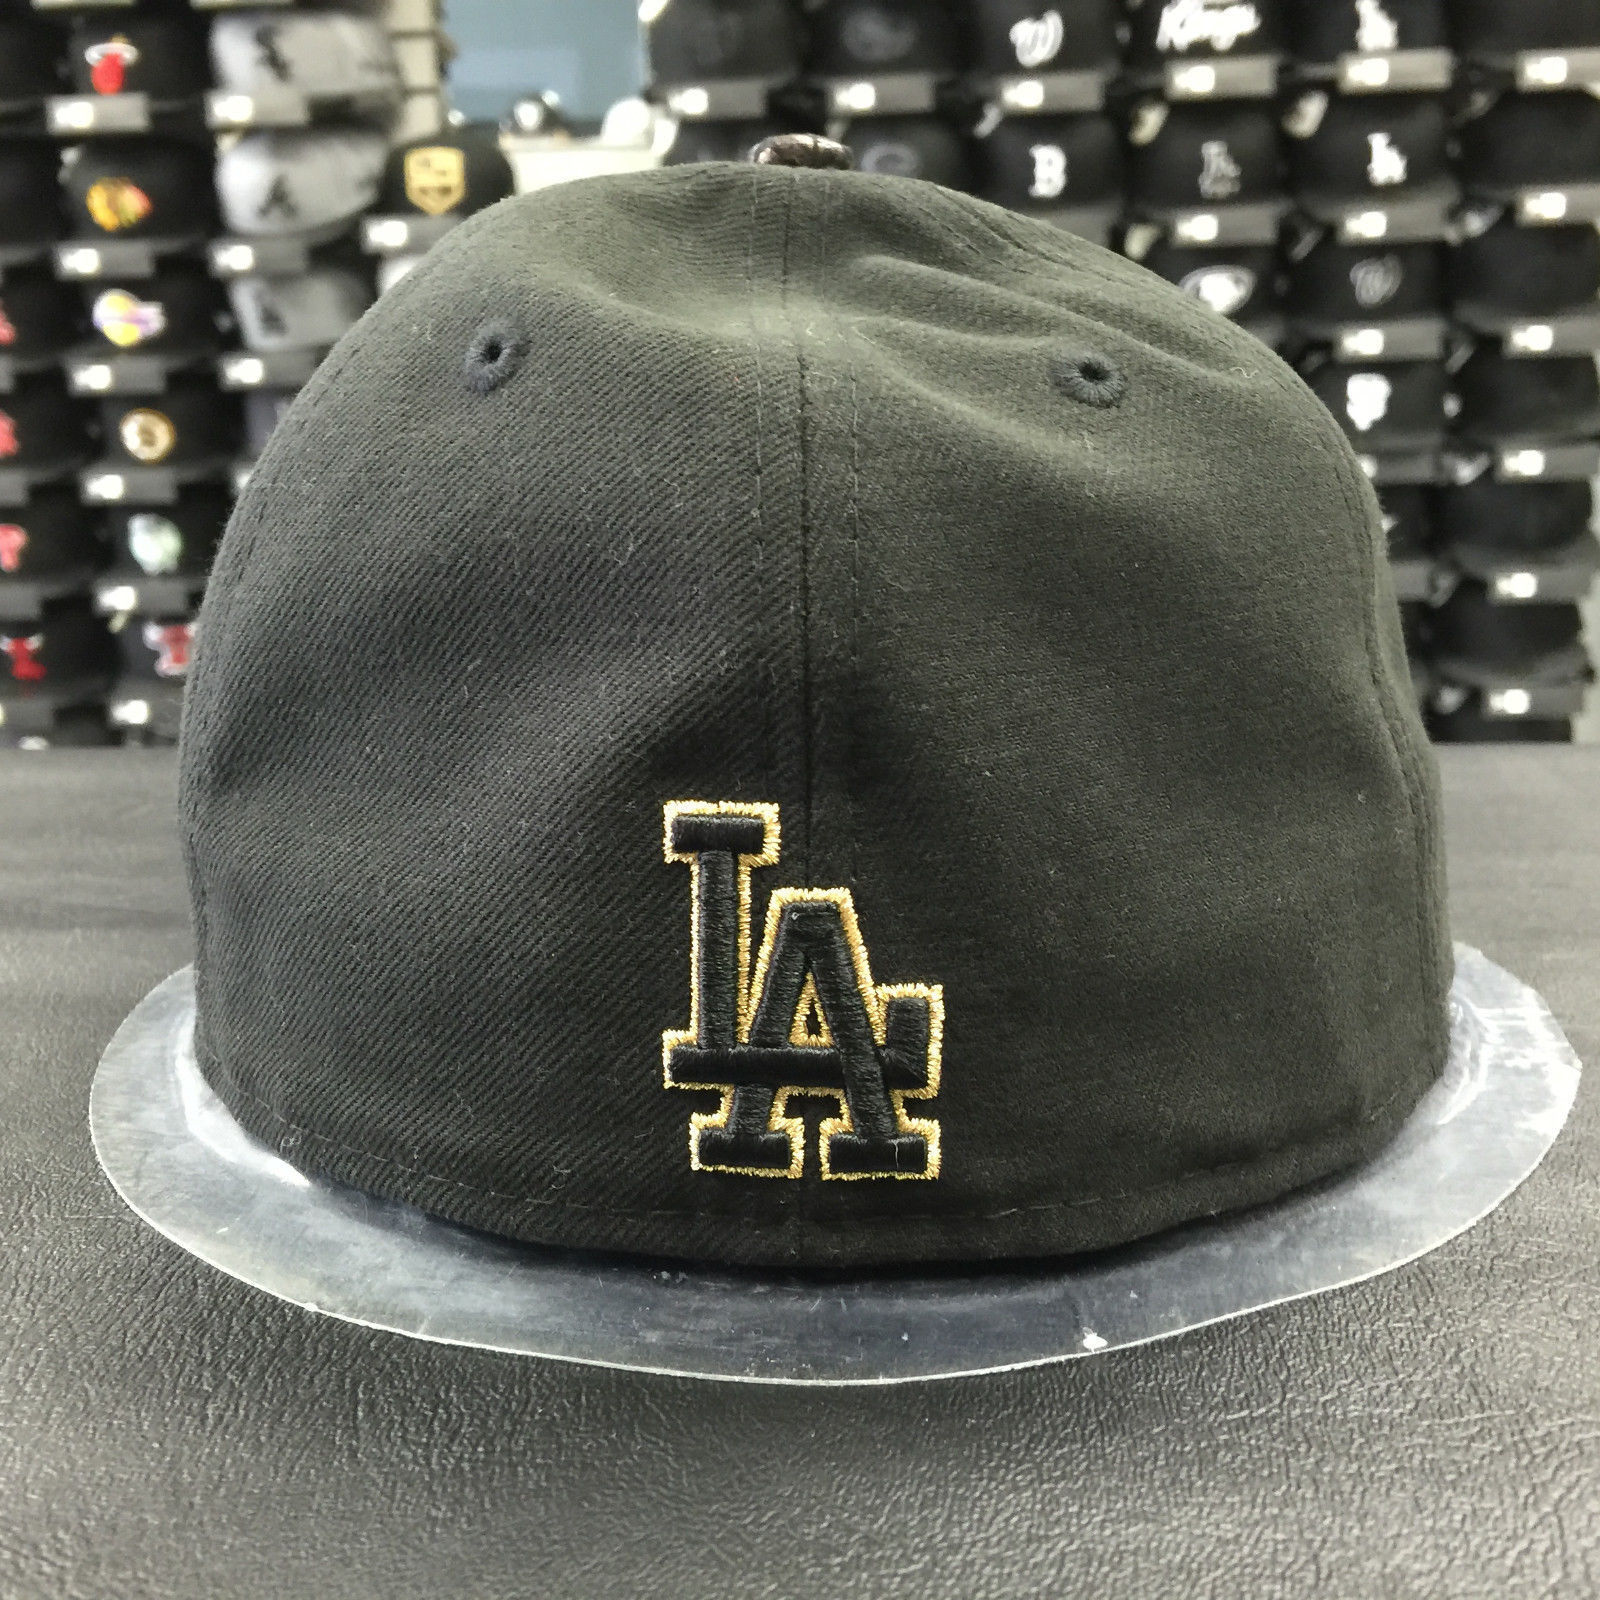 New Era 59Fifty MLB Los Angeles Dodgers Snakeskin Fitted Cap